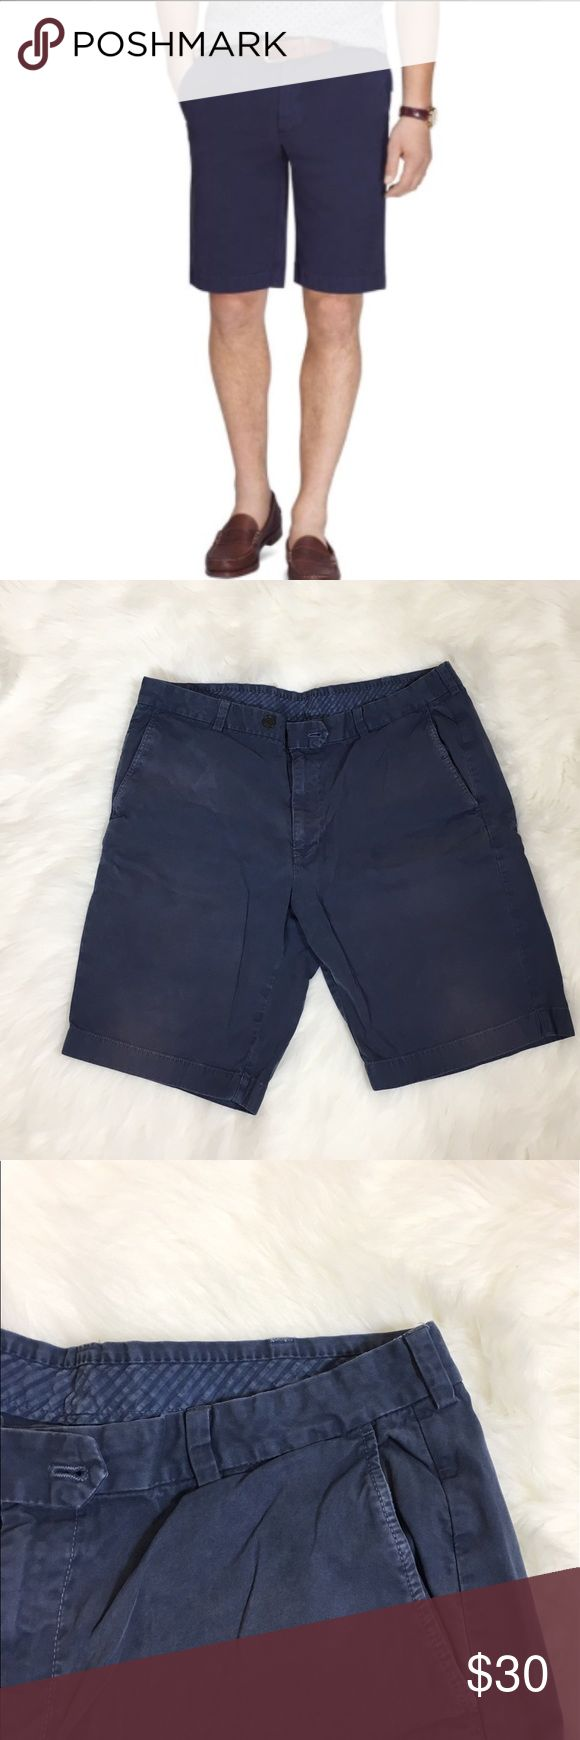 Brooks Brothers Men's Navy Bermuda Shorts Brooks Brothers Men's Navy Bermuda Shorts. 100% Cotton, excellent condition. Size W38. No modeling/trades. Brooks Brothers Shorts